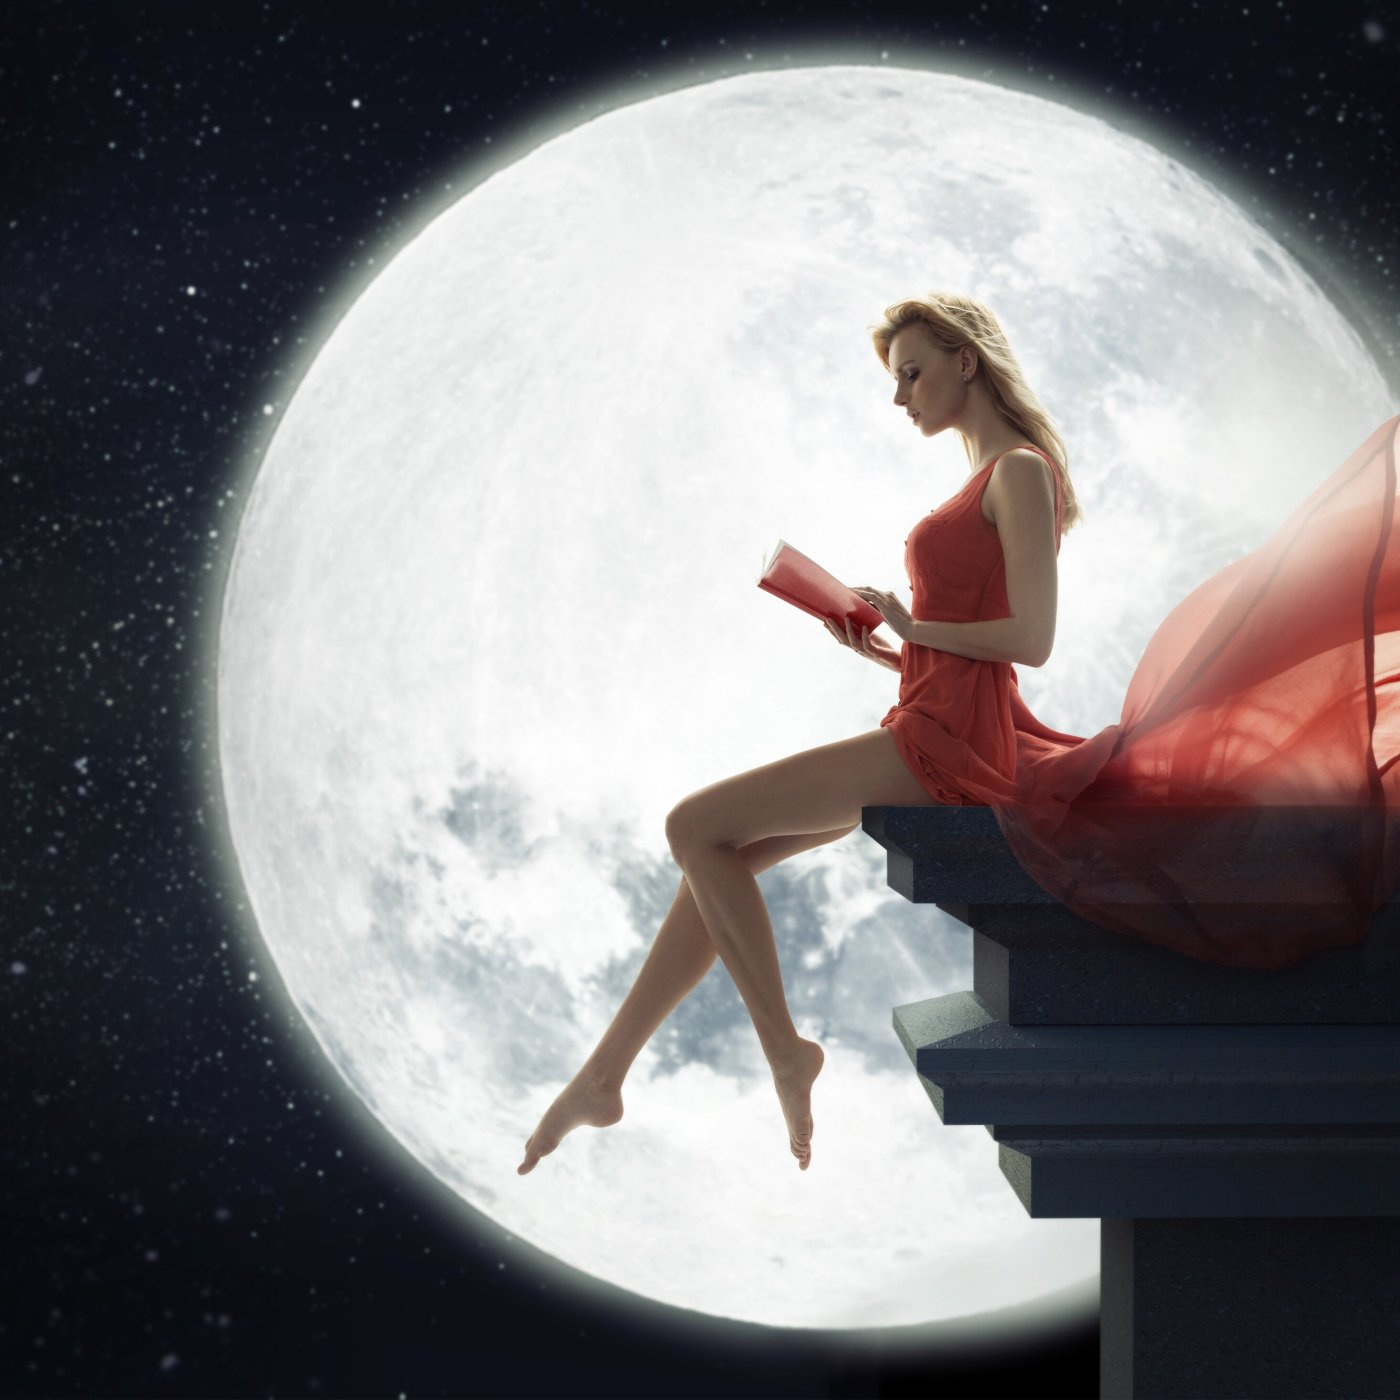 The moon and the girl